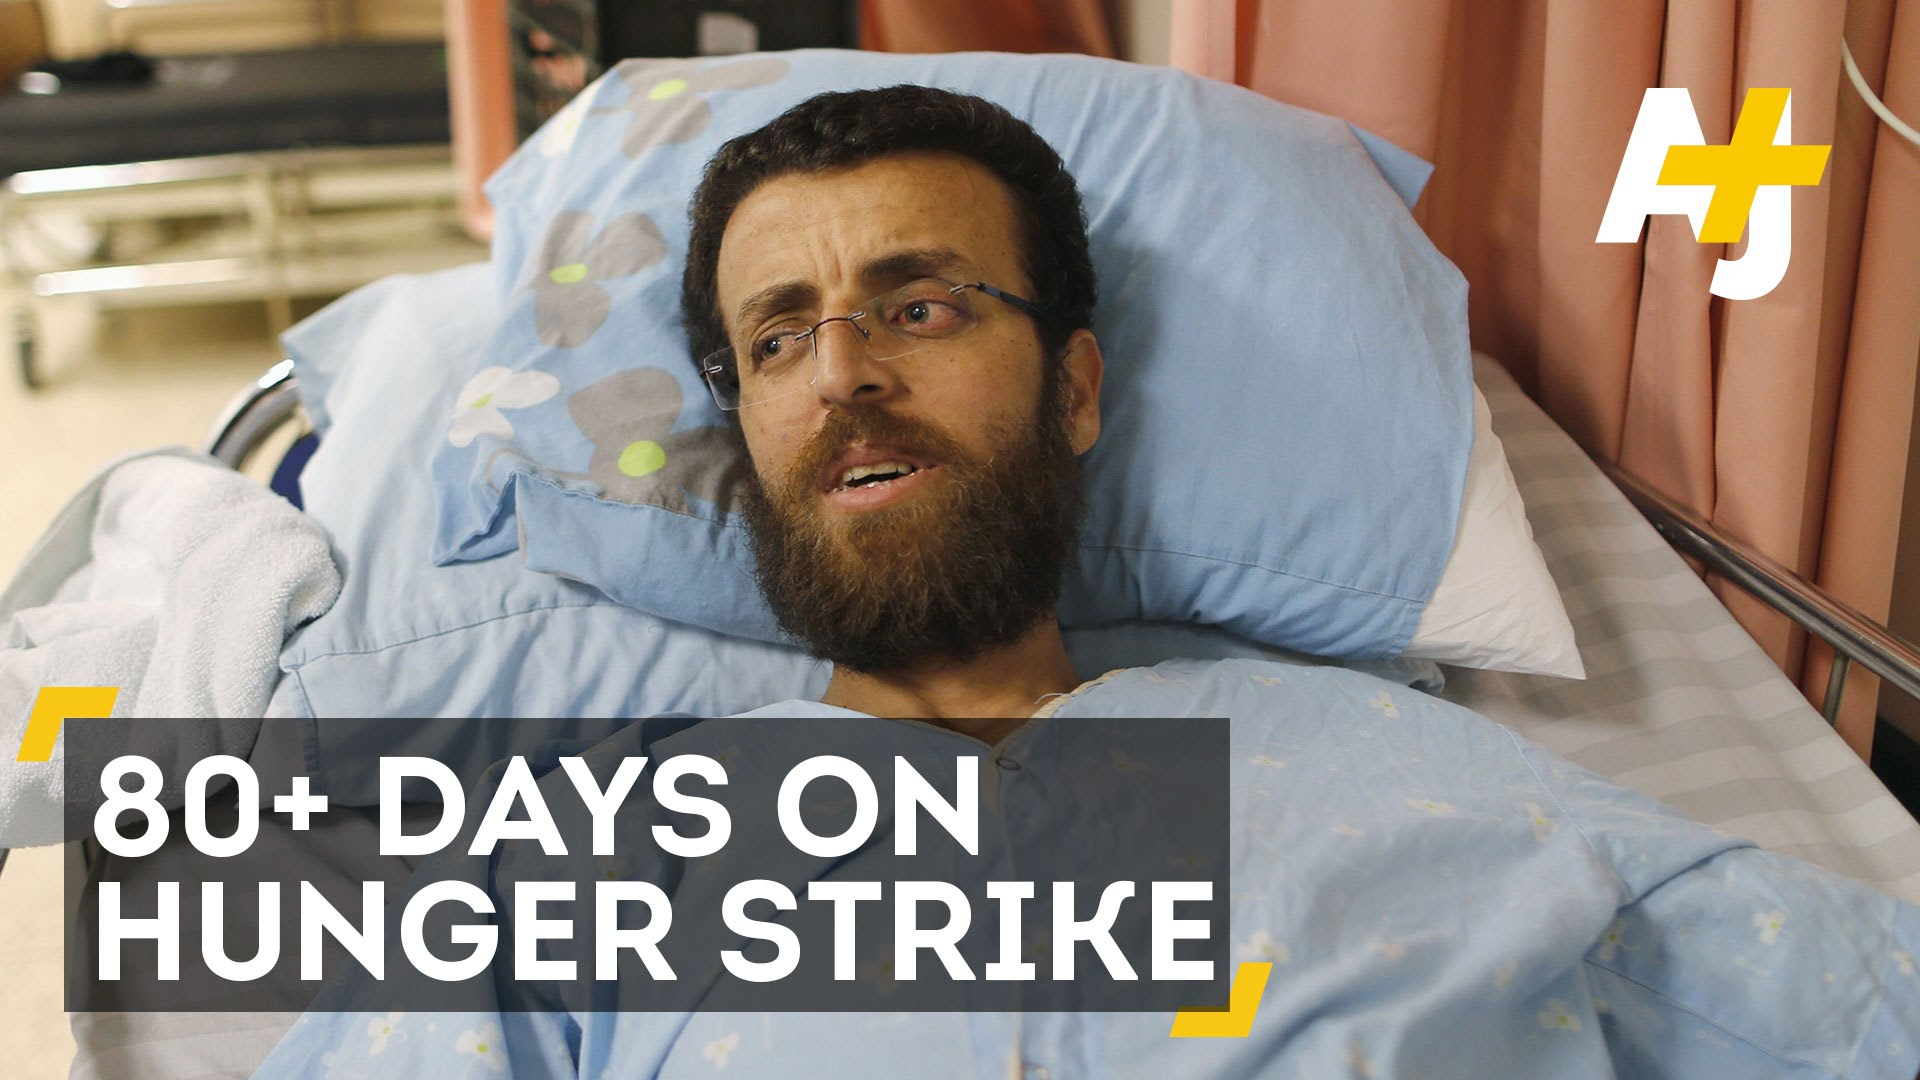 A Palestinian Journalist On Hunger Strike